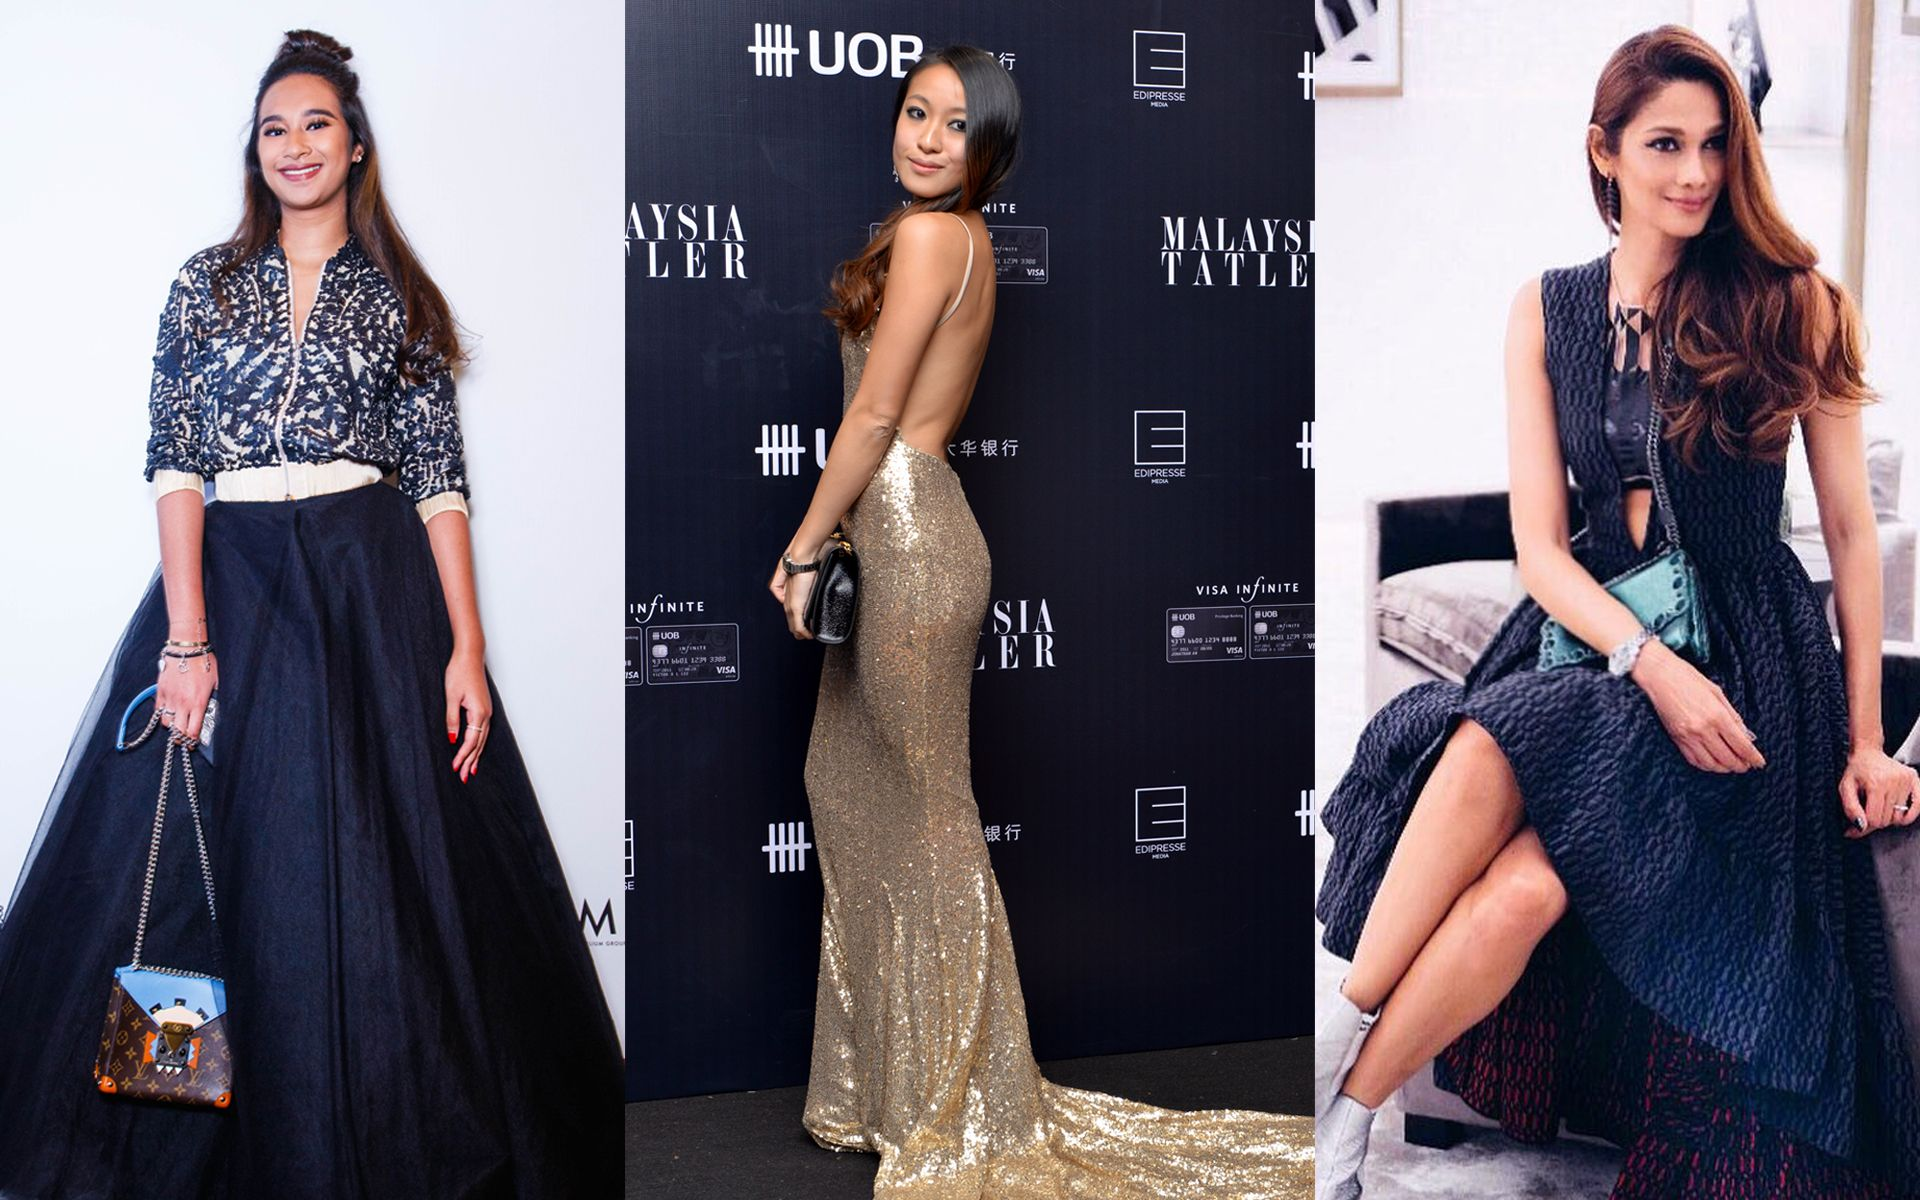 Asia's Most Stylish: 11 Malaysian Fashionistas To Watch In 2018